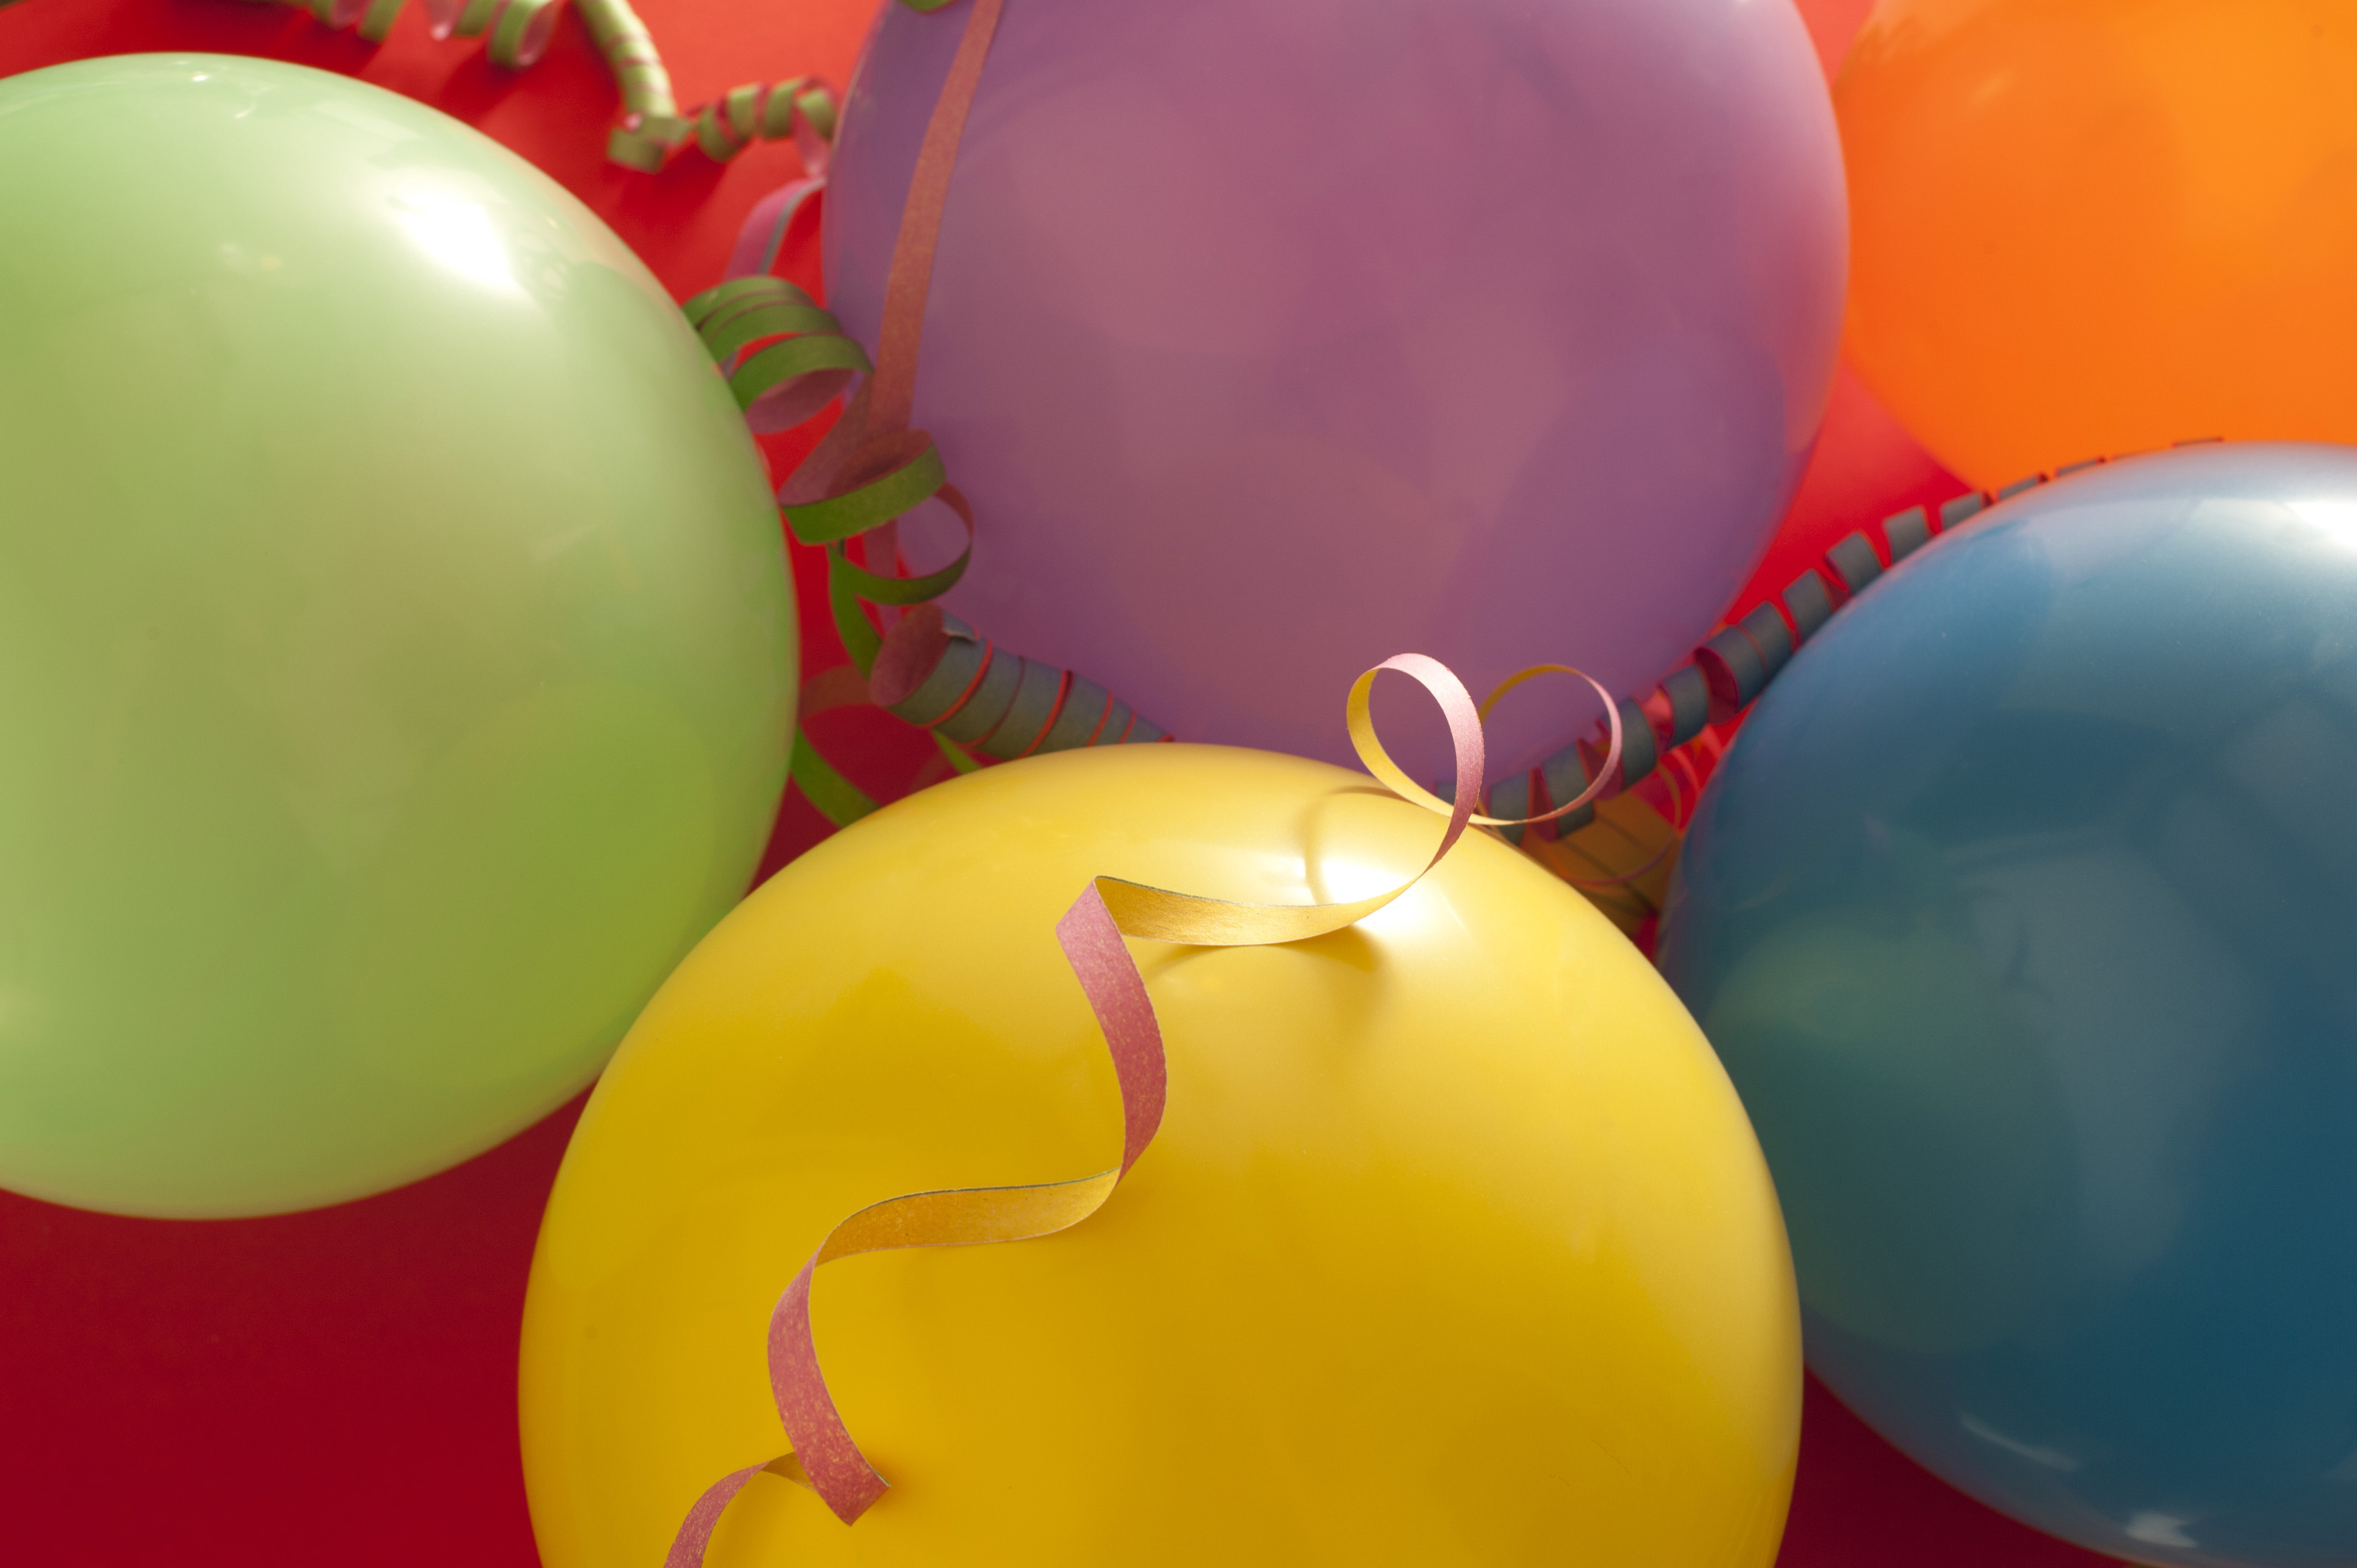 Wallpaper Happy Girl Free Stock Photo 11397 Party Background Of Colorful